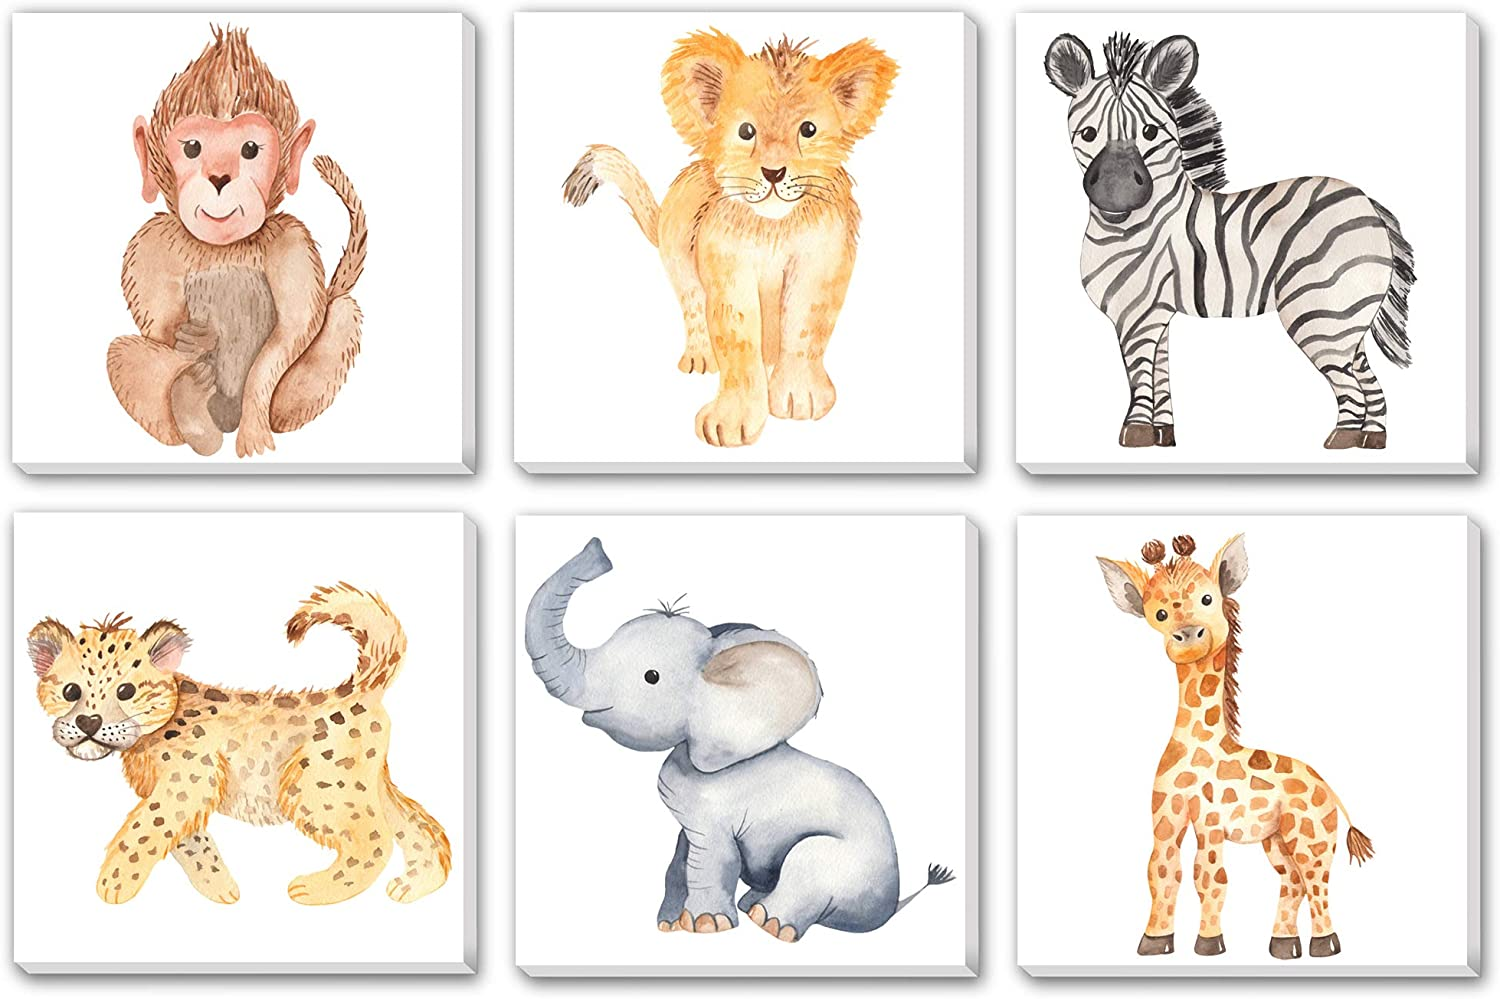 Texture of Dreams Watercolor Cute Baby Africa Jungle Animals Print on Canvas Wall Art, Lion Monkey Elephant Giraffe Leopard Zebra, Safari Wild Animals Nursery Boy Room Decor 6 Pack (10